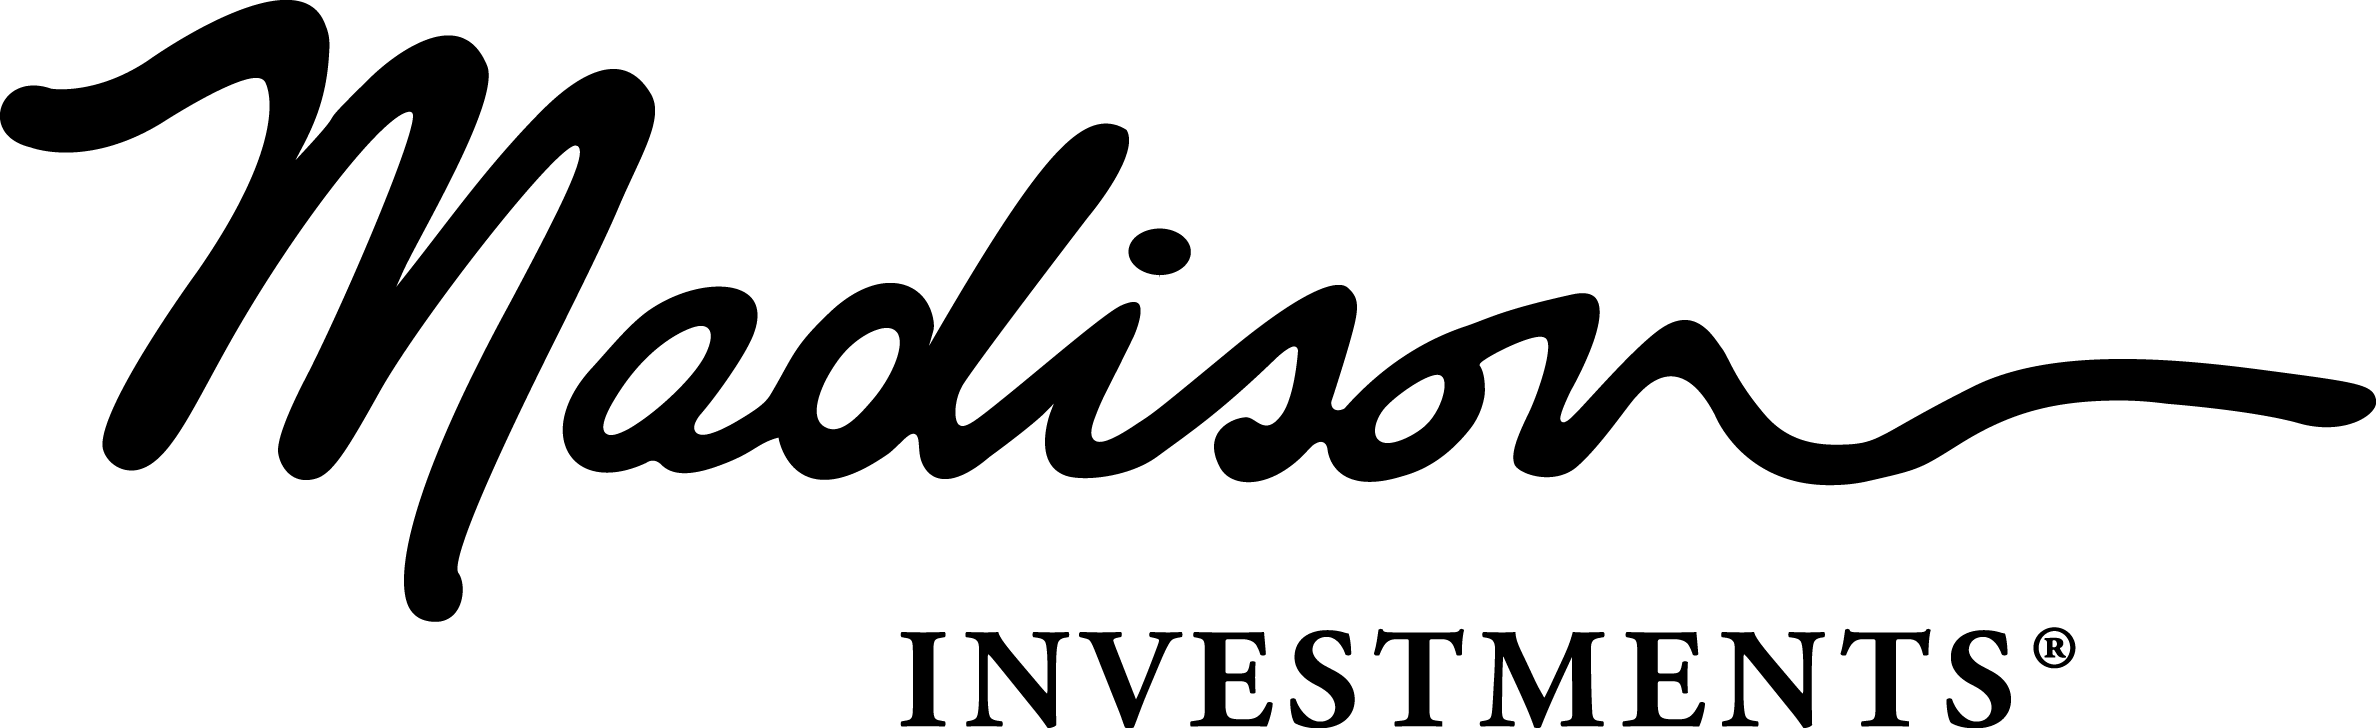 logo-investments-black.png